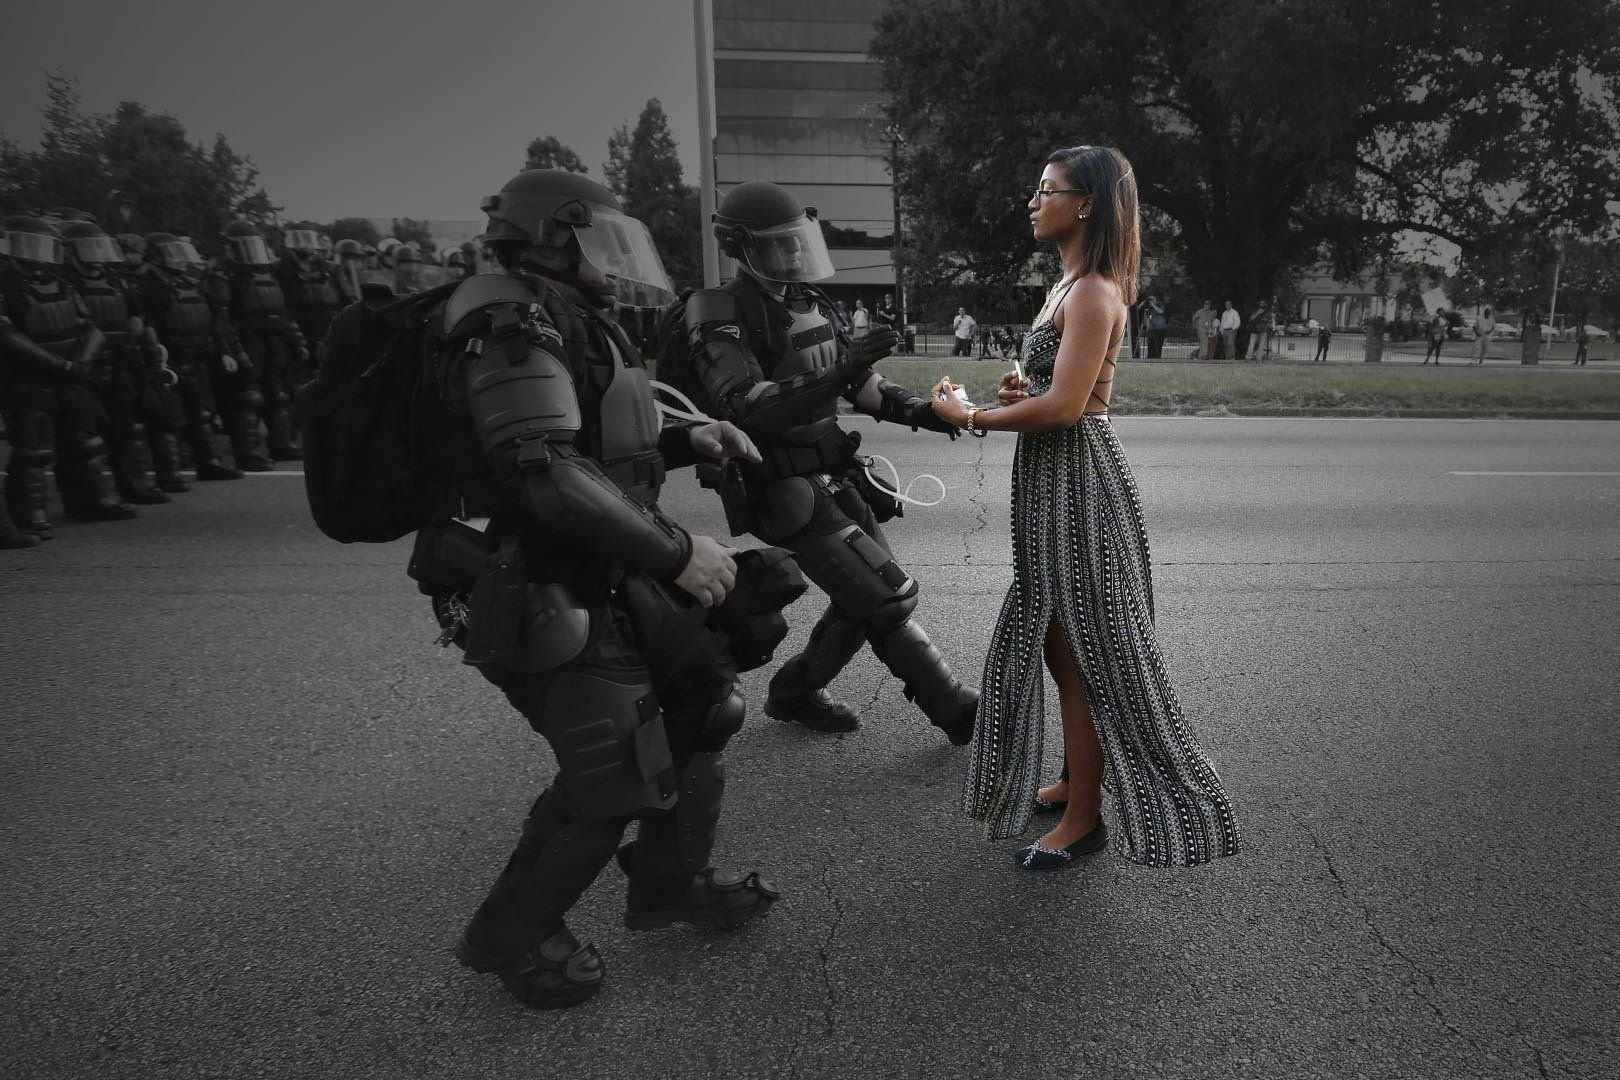 Lone activist Ieshia Evans stands her ground while offering her hands for arrest as she is charged by riot police during a protest against police brutality outside the Baton Rouge Police Department in Louisiana, USA, 9 July 2016. Evans, a 28-year-old Pennsylvania nurse and mother of one, traveled to Baton Rouge to protest against the shooting of Alton Sterling. Sterling was a 37-year-old black man and father of five, who was shot at close range by two white police officers. The shooting, captured on a multitude of cell phone videos, aggravated the unrest coursing through the United States in previous years over the use of excessive force by police, particularly against black men. REUTERS/Jonathan Bachman   TPX IMAGES OF THE DAY